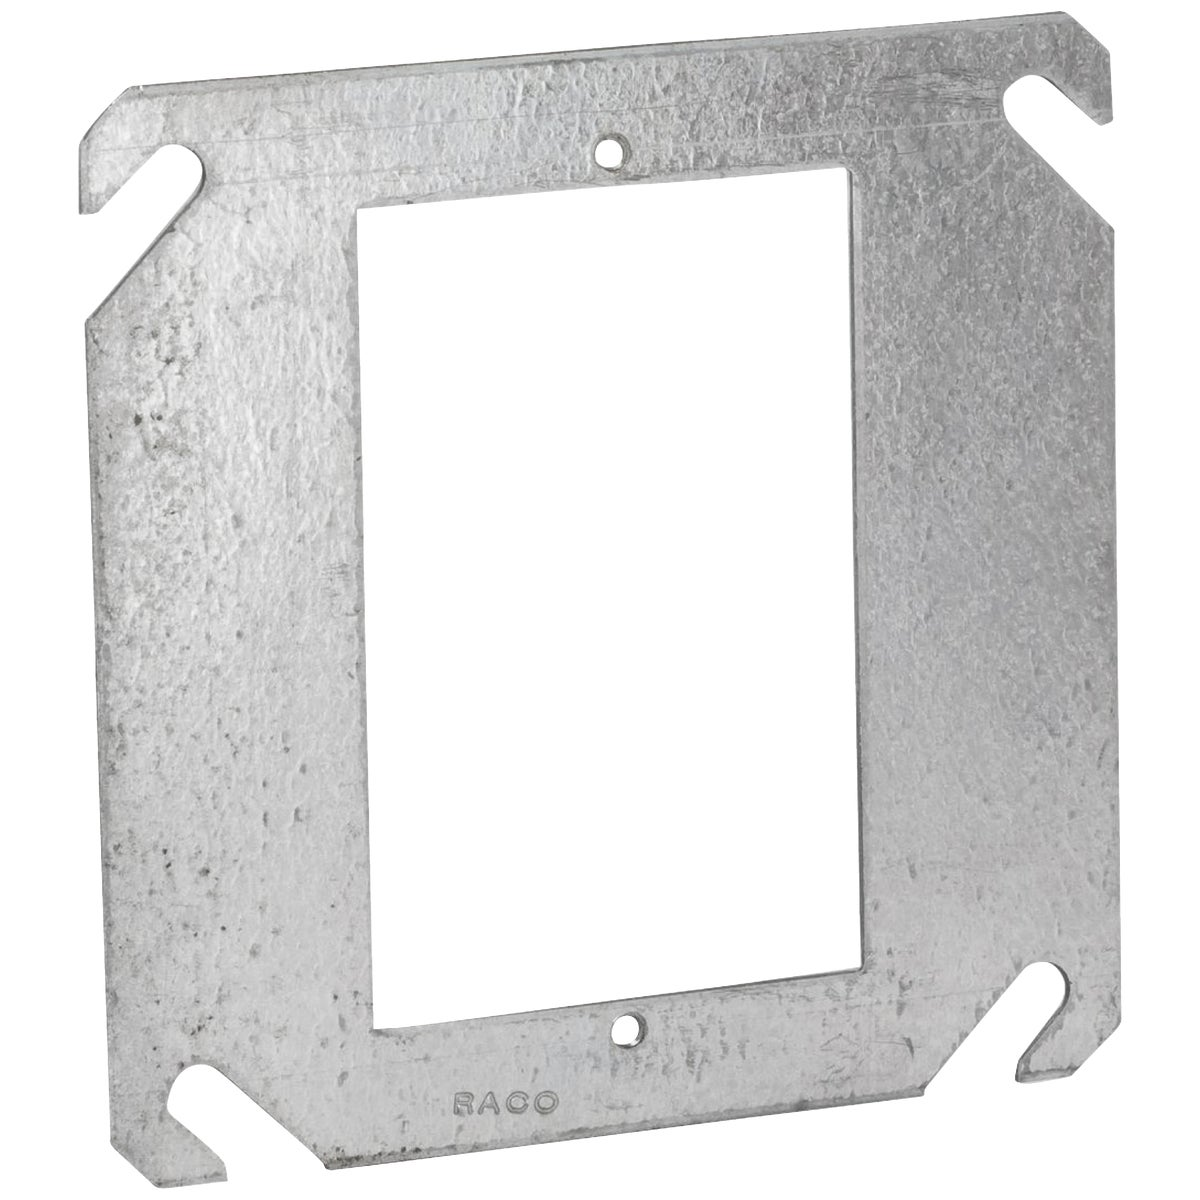 "4"" SQ 1-DEVICE COVER - 52C0 by Thomas & Betts"